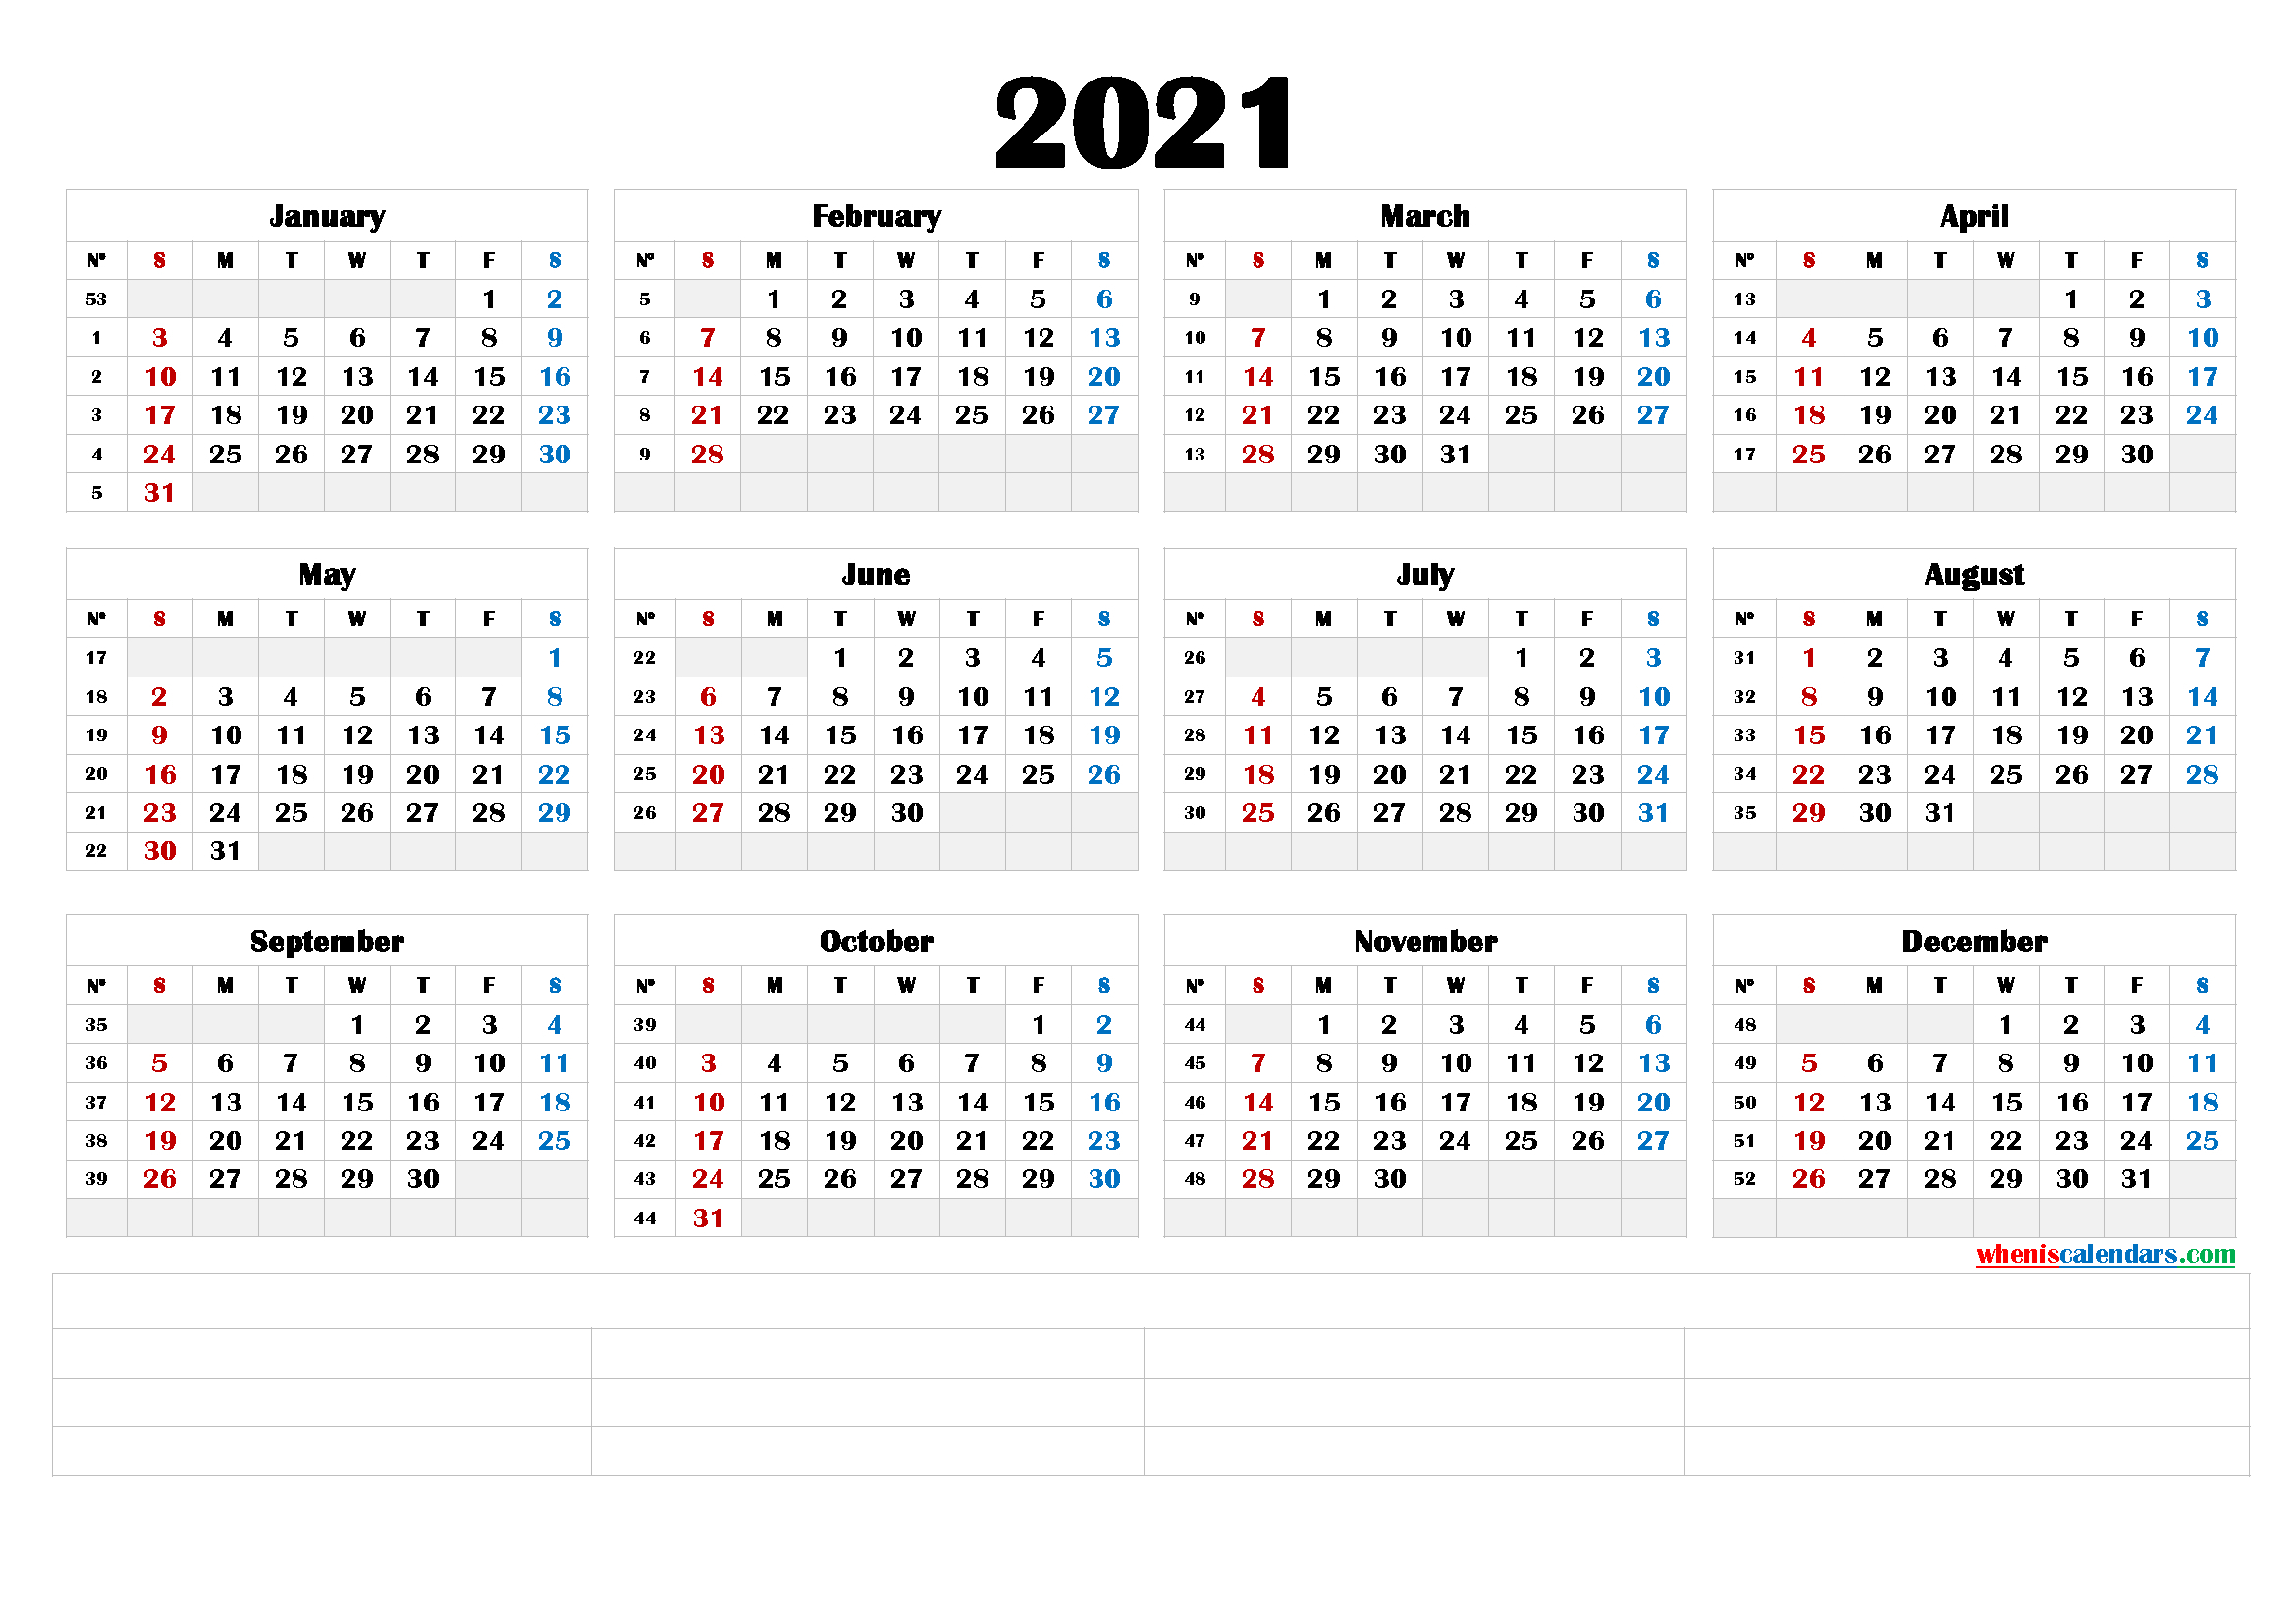 Free 2021 Yearly Calender Template - Free Printable